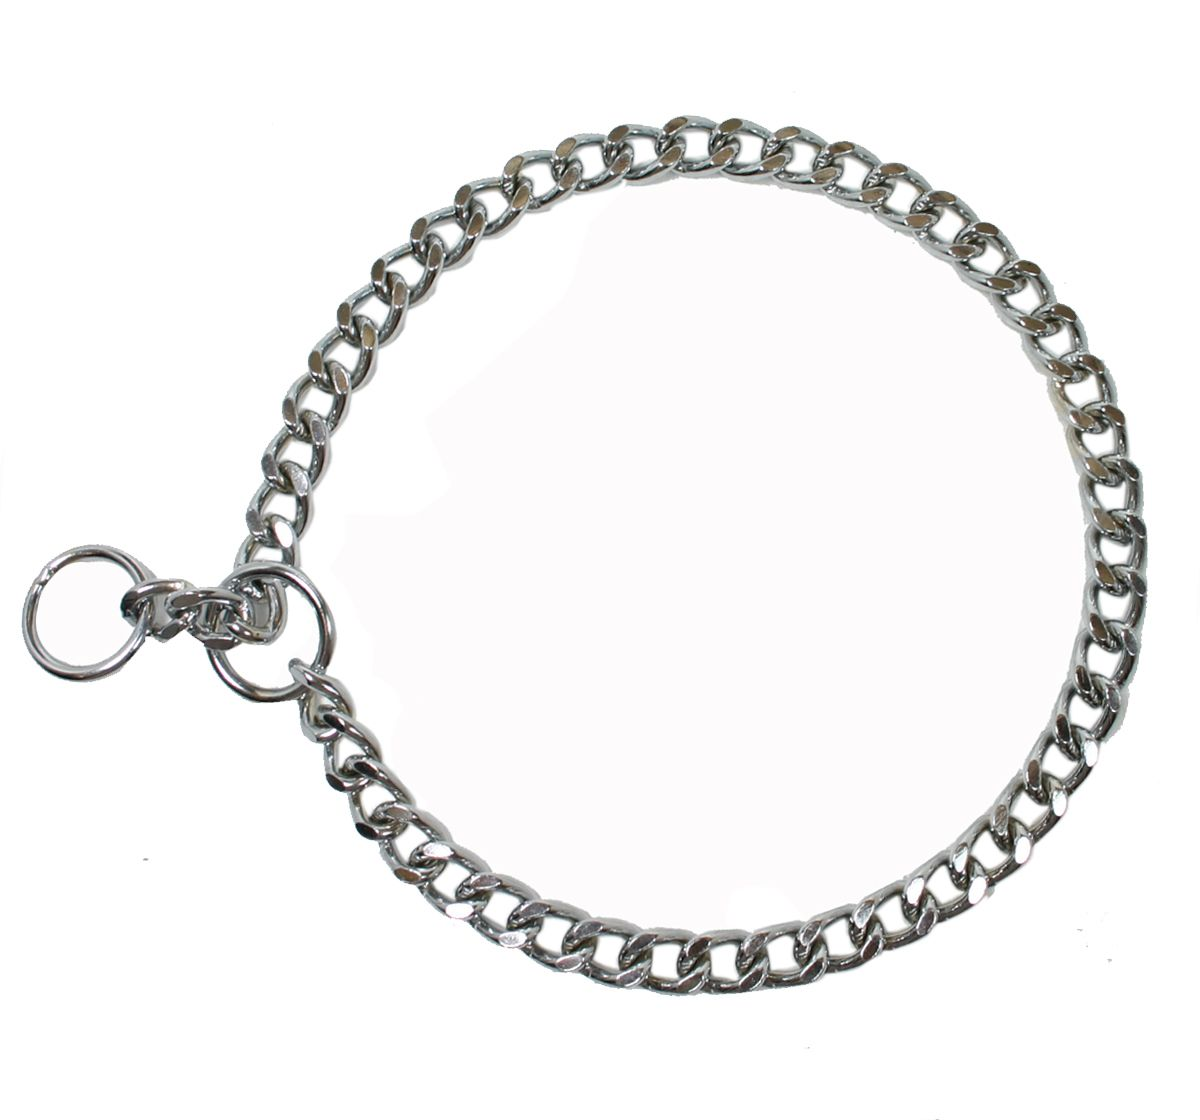 Dog Collar Choke Chain Thick 22 Inches